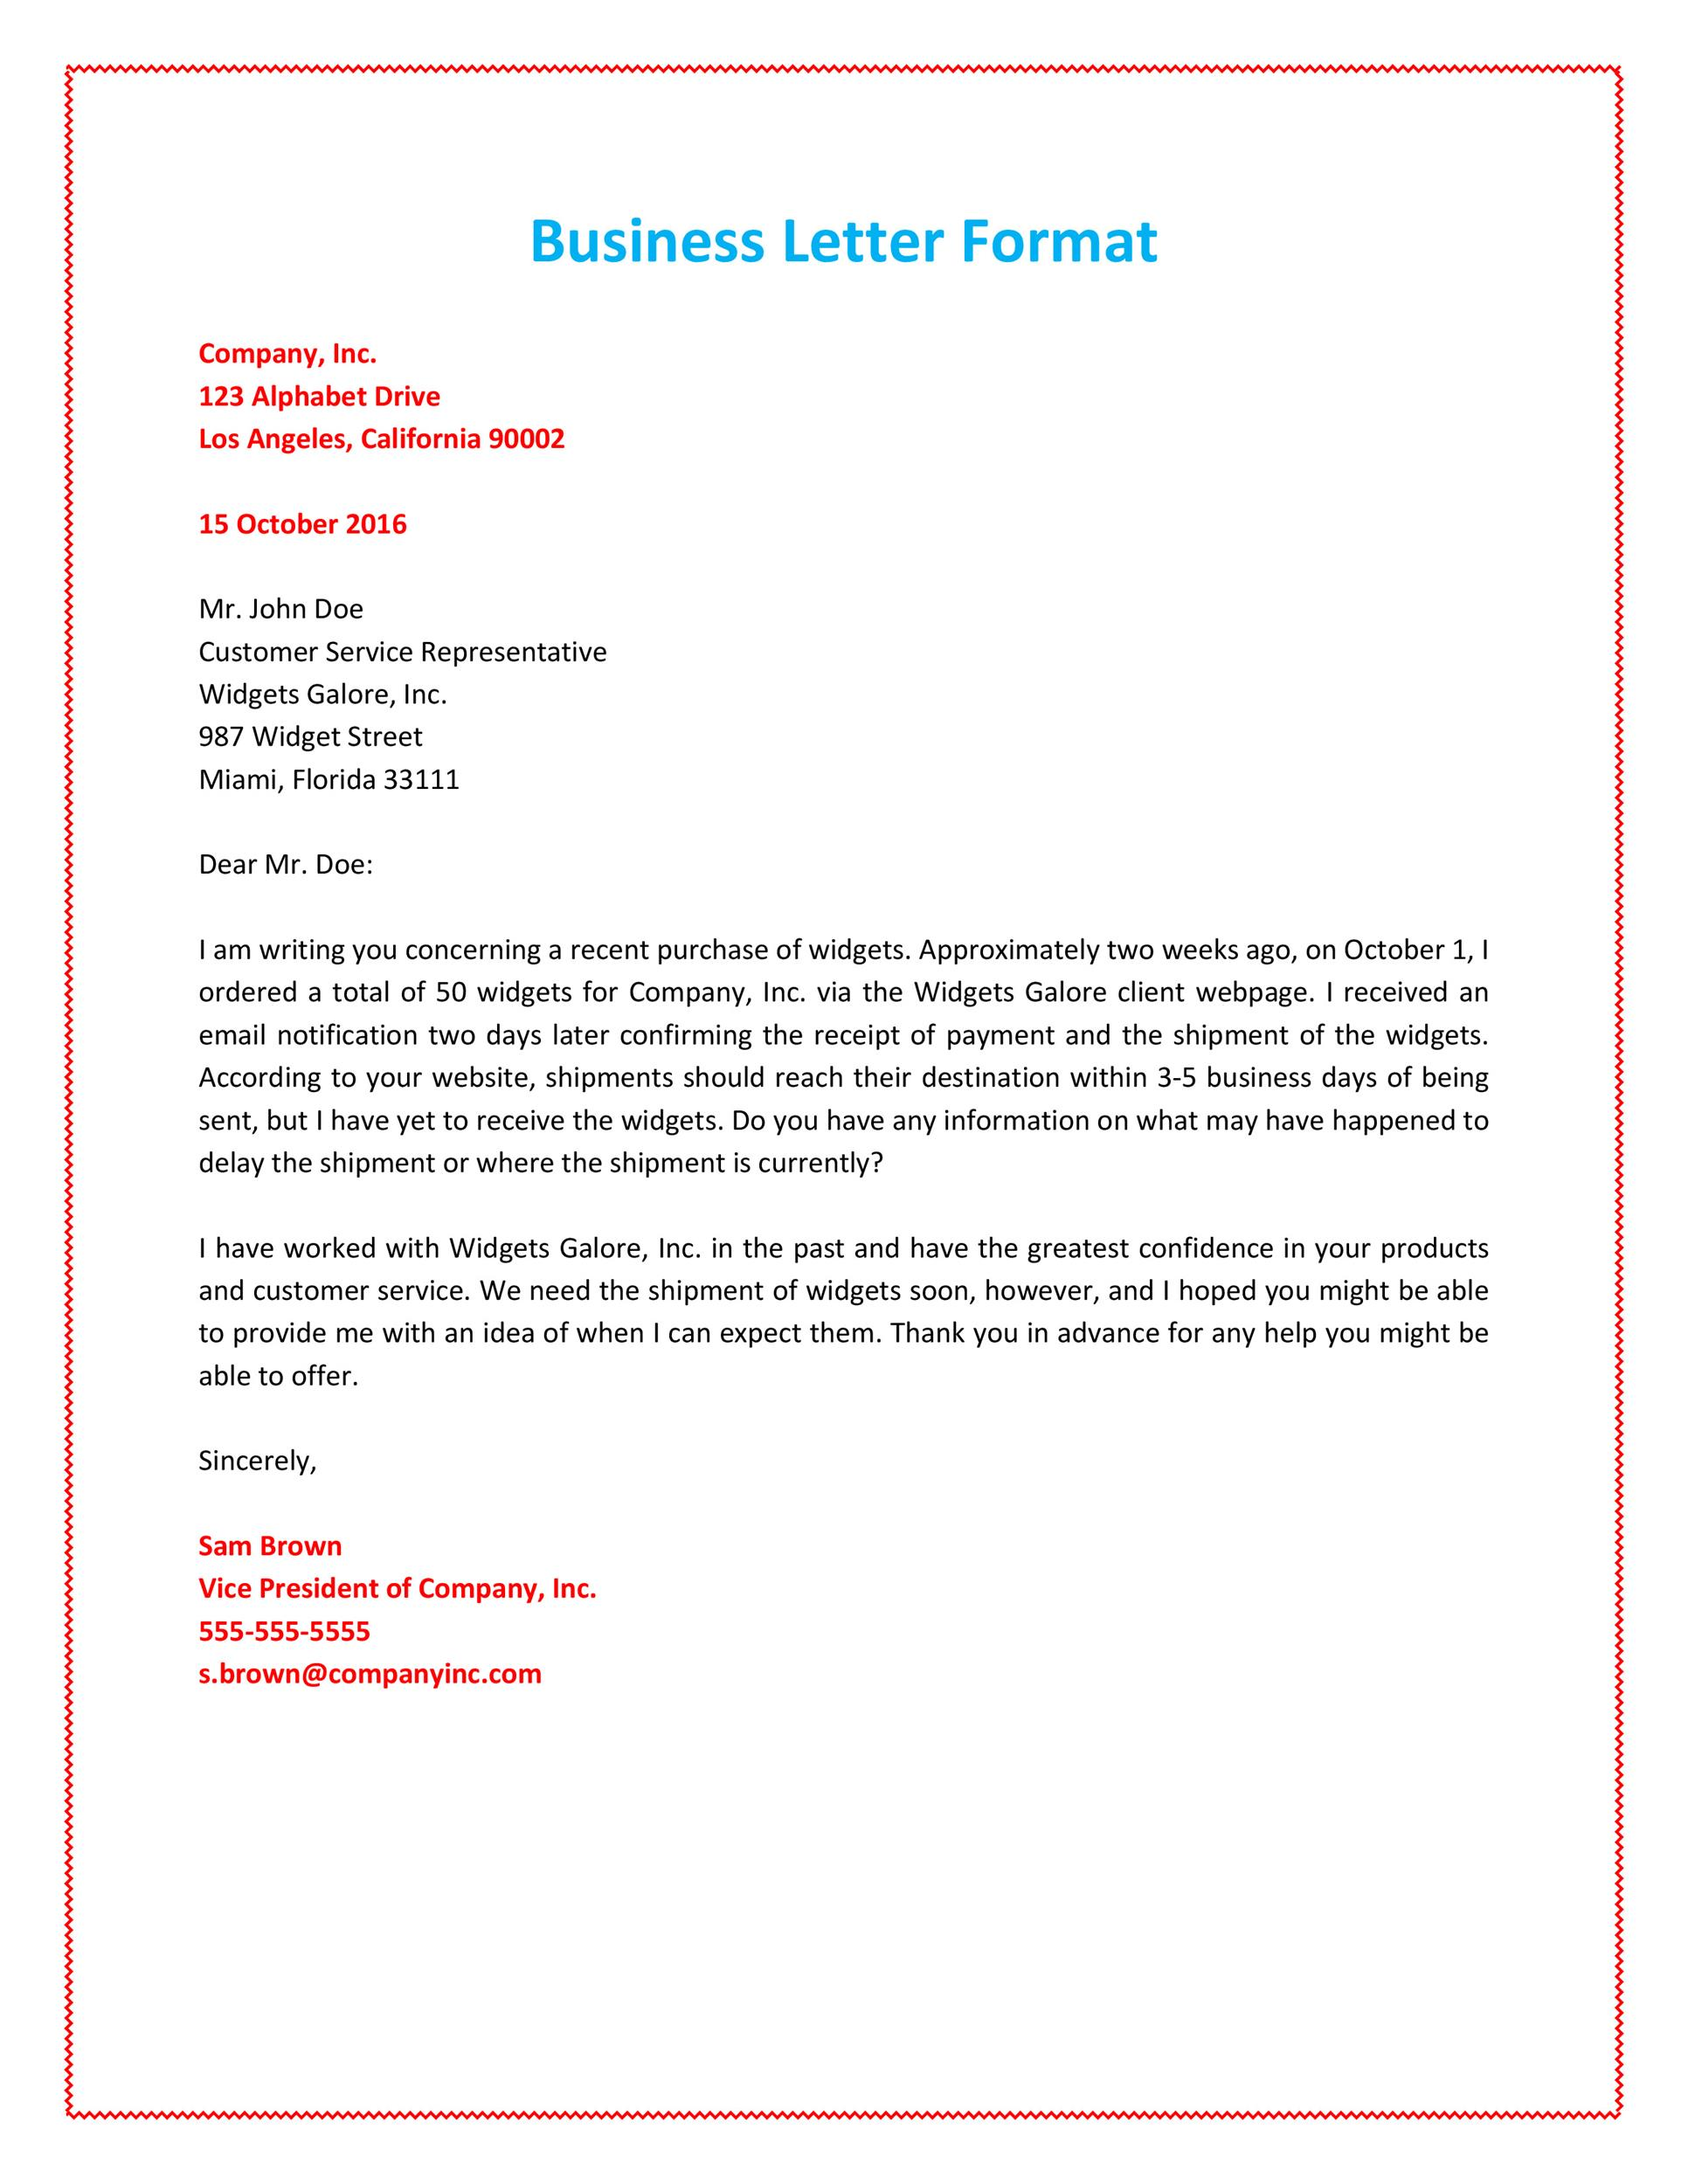 35 Formal / Business Letter Format Templates & Examples ᐅ